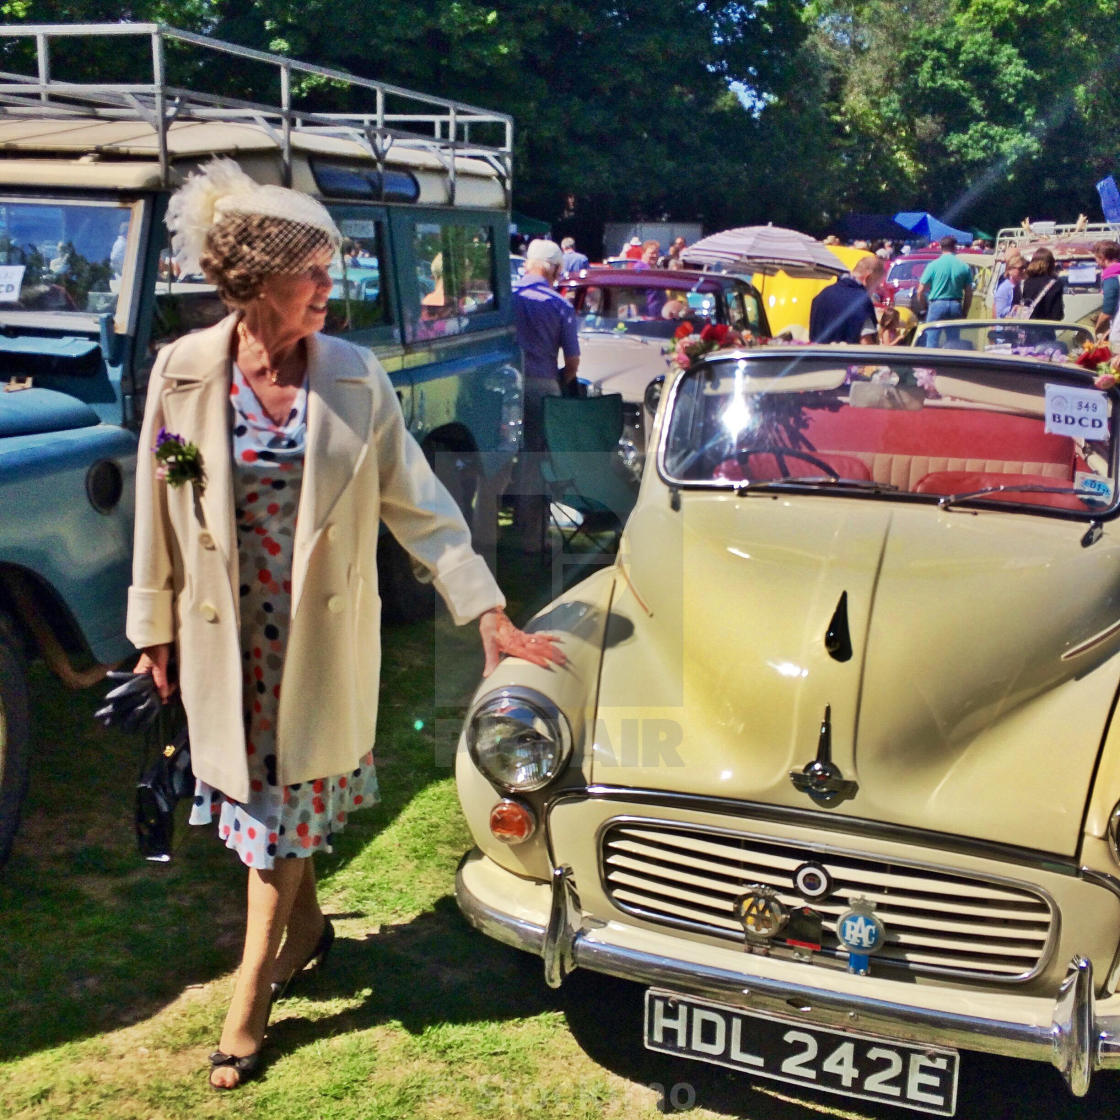 A Classic Car Owner At A Vintage Car Show In England License For - Car show england